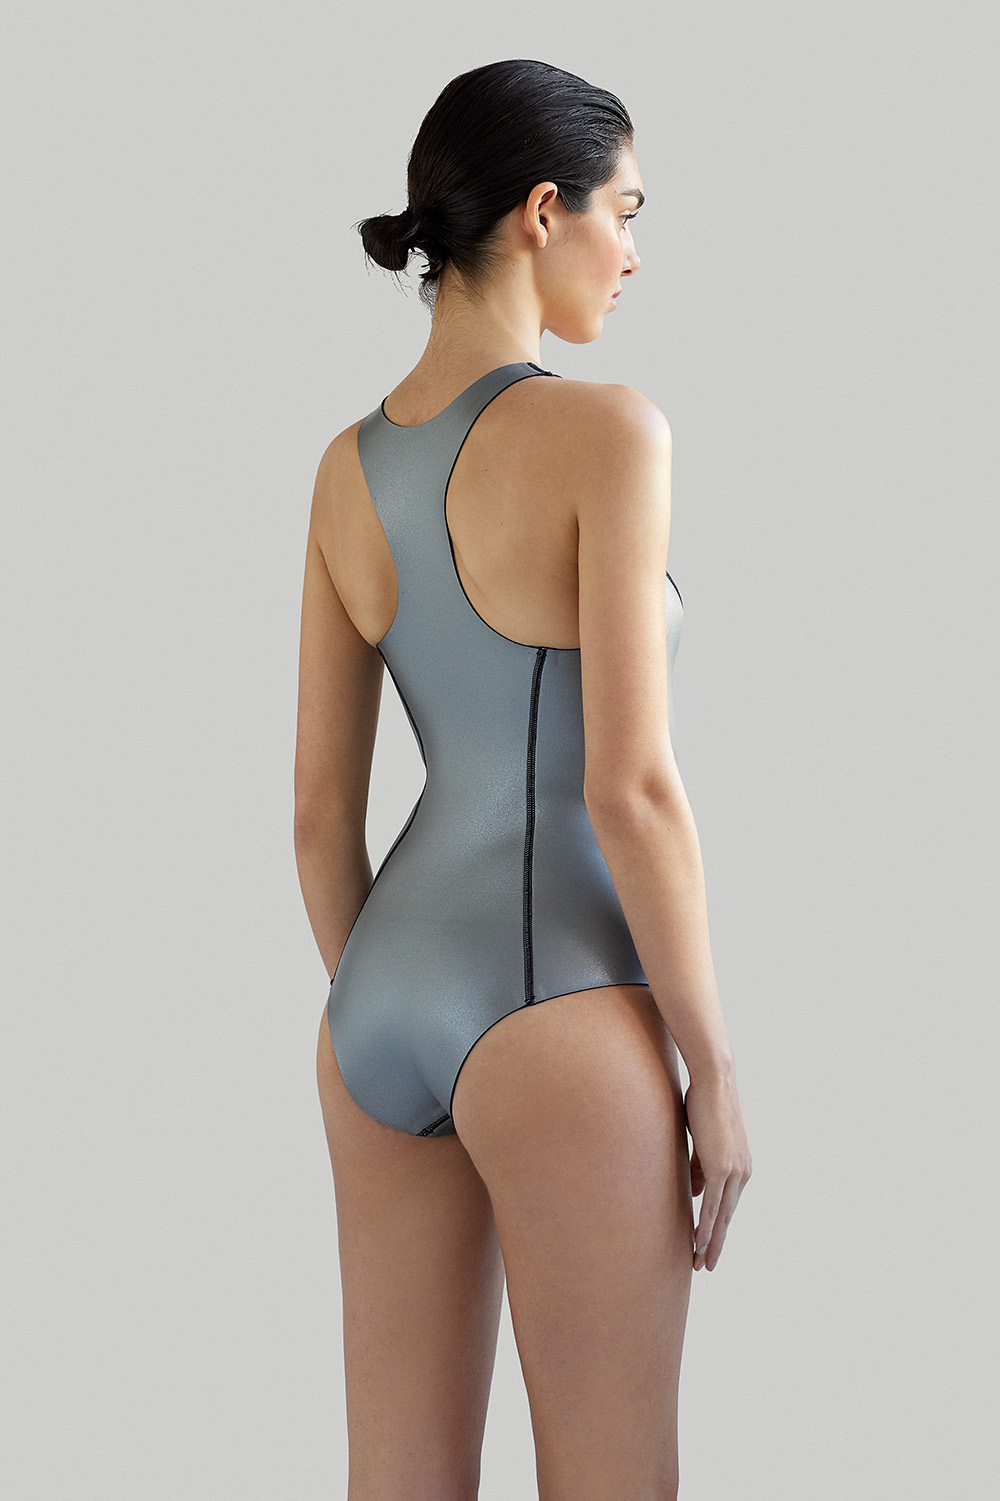 NOW_THEN Sylvia ecoprene wetsuit silver back